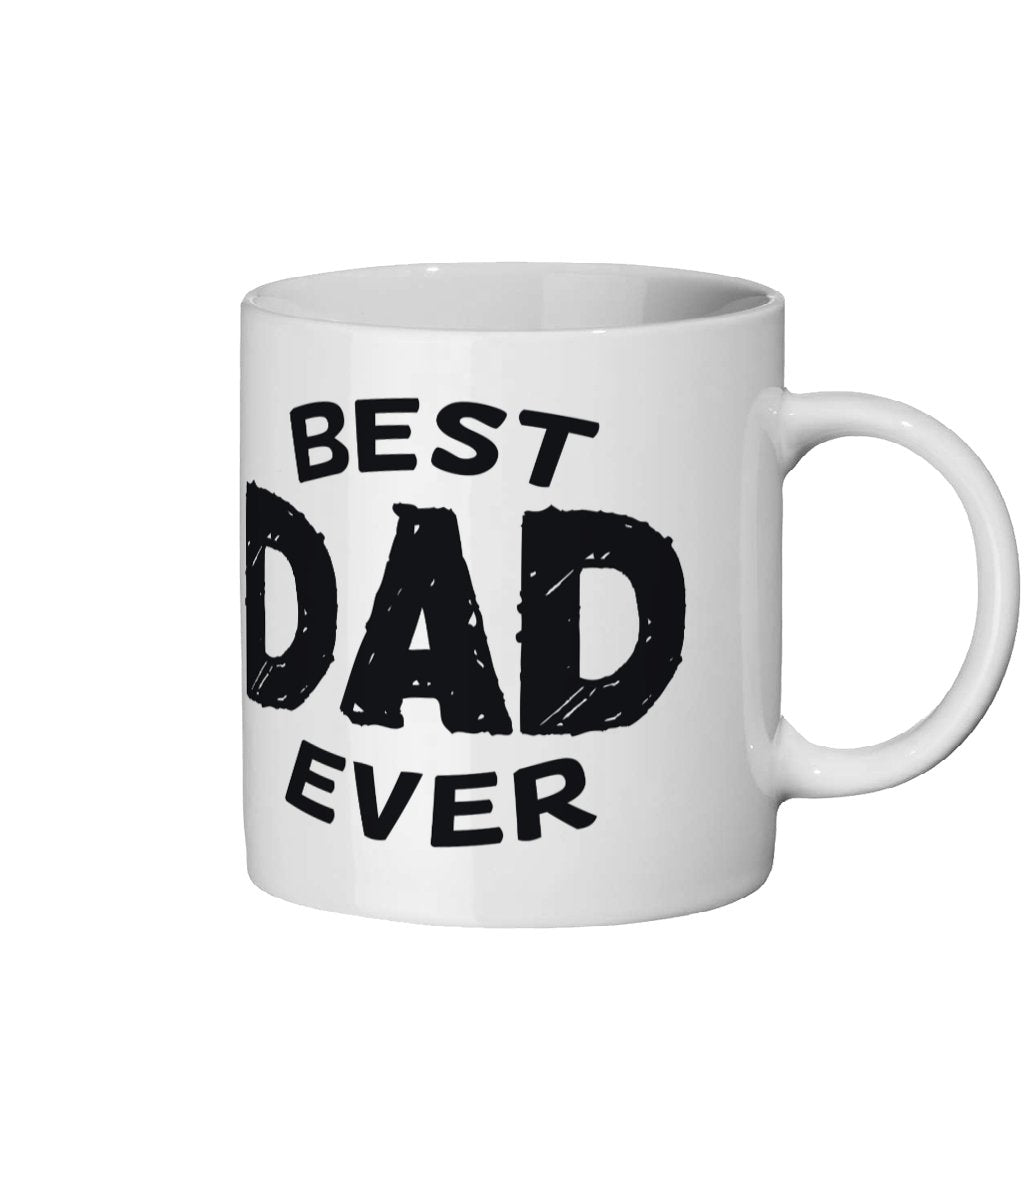 Best Dad Ever Ceramic Mug 11oz - The Gift Project